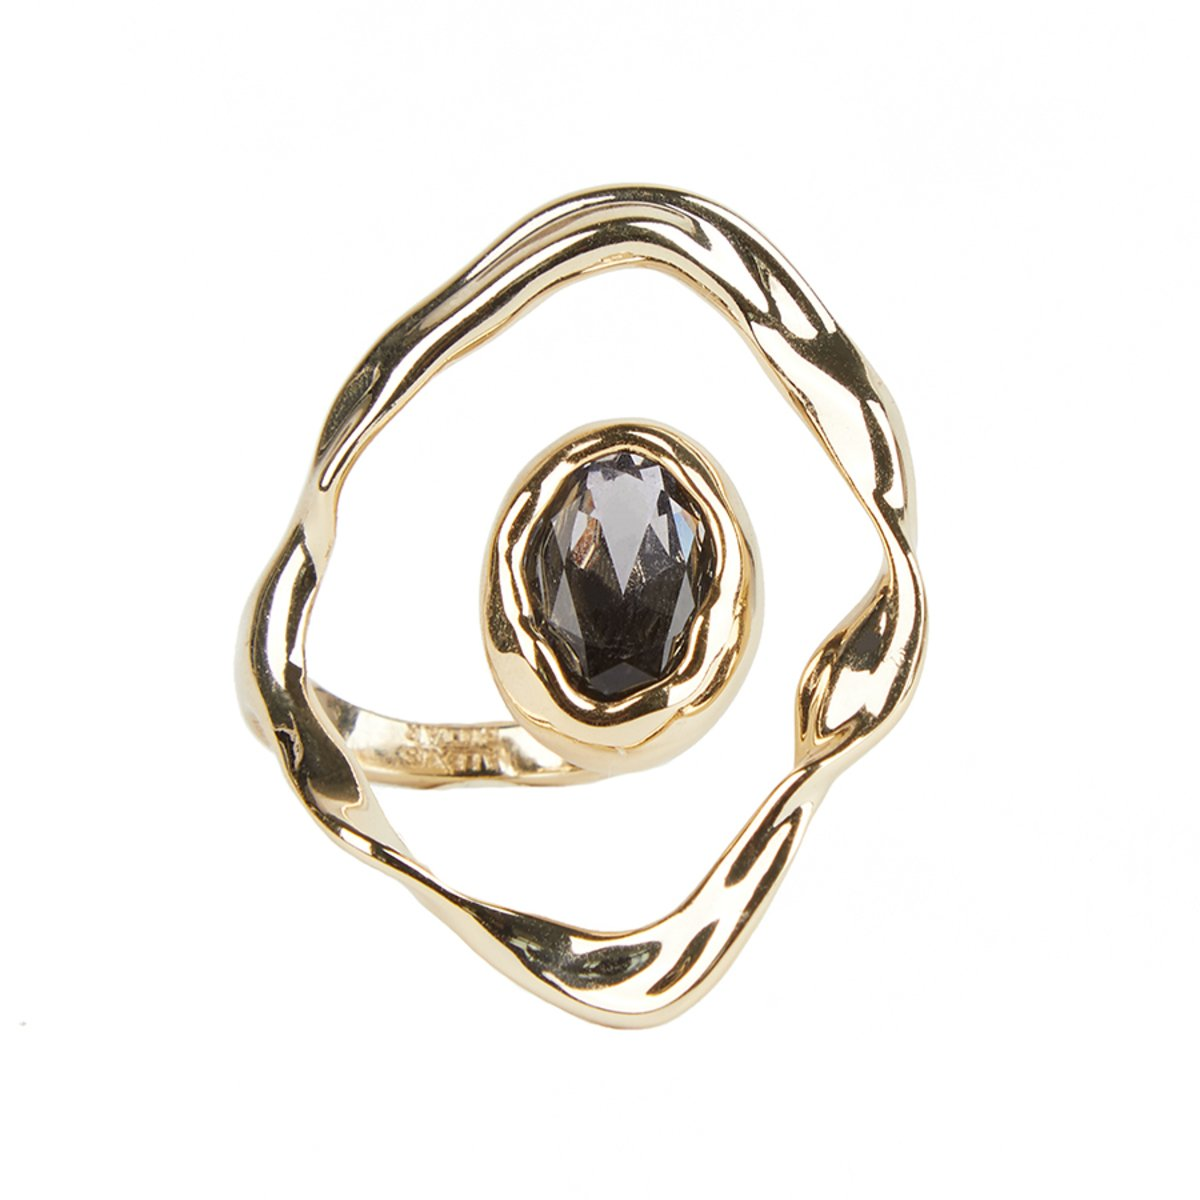 Crumpled Orbit Stone Ring